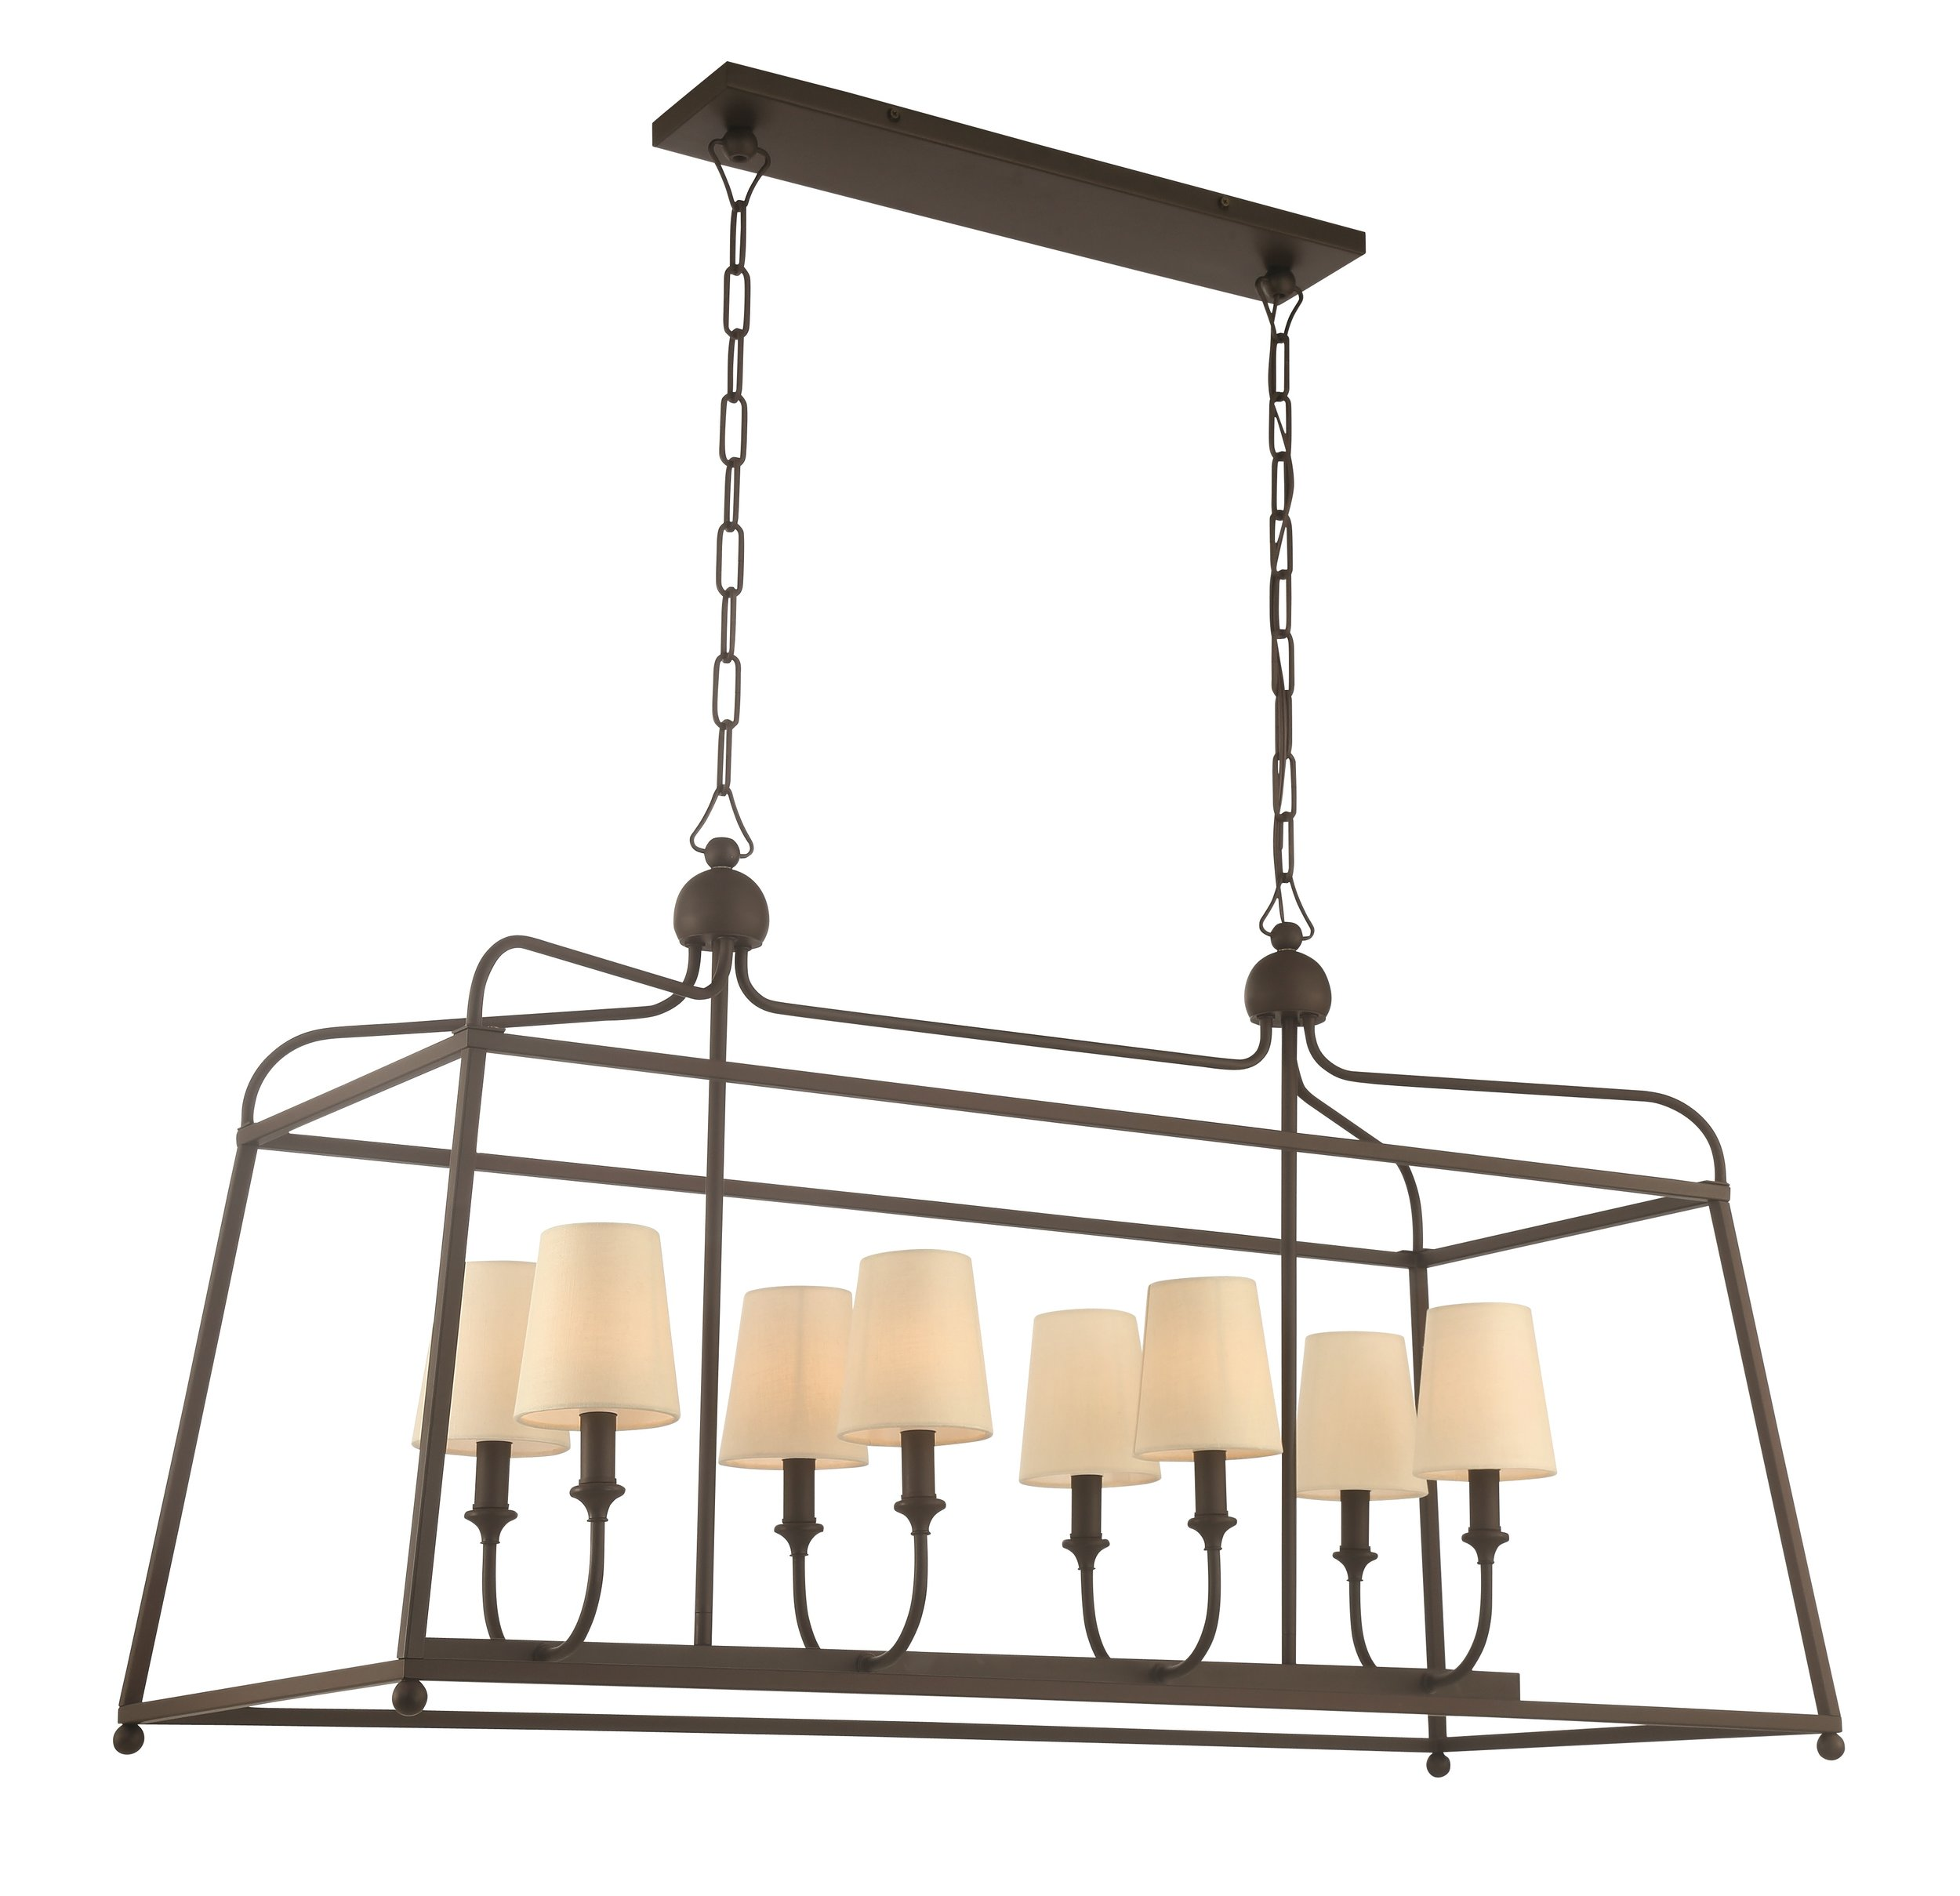 "Product Name:  Crystorama Sylvan 6 Light Dark Bronze Chandelier  Dimensions:  w18 x h25 x d42 (in)  Total Number Lights:  6  External Lights:  6  Total Wattage:  360  Bulb Type:  Candelabra  Material:  Steel  Finish:  Dark Bronze  Canopy Size:  4.5"" x 21.25"" x 4.5"" (in)  Chain Length:  72""/120""  Item Weight:  10  Package Weight:  13  Shade Size:  3"" x 4"" x 4.5"" (in) Empire"